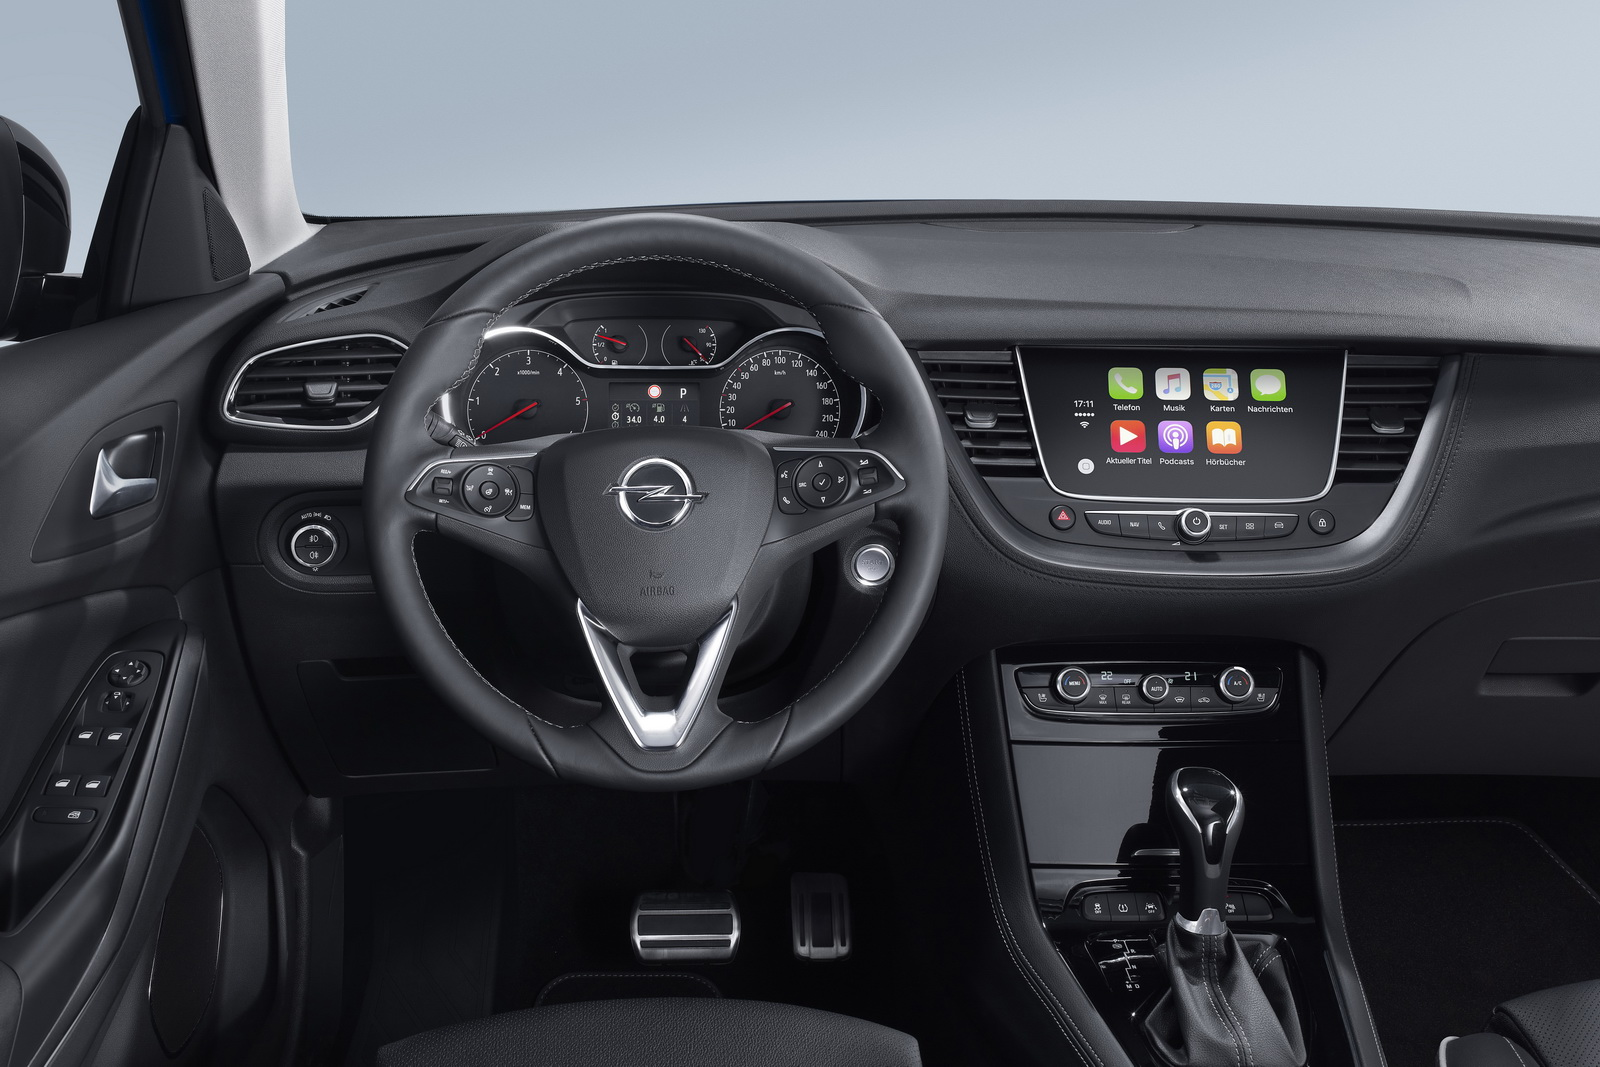 Luxury: The Opel Grandland X is now available as an Ultimate model variant, with highest comfort, top connectivity and advanced technologies.